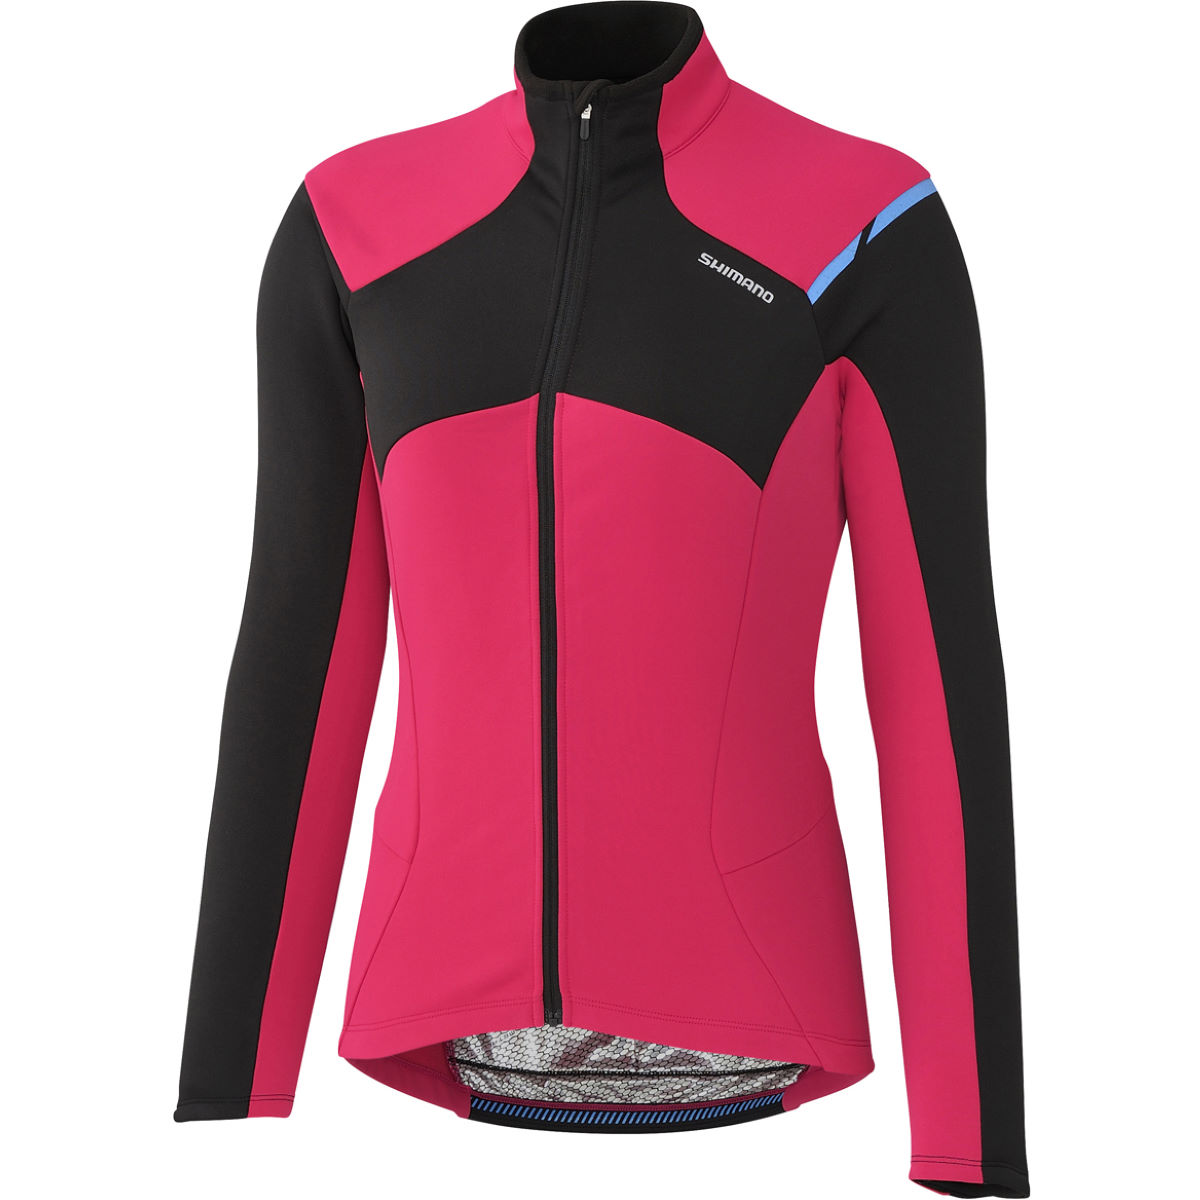 Veste Femme Shimano Performance Windbreak - Medium Rose Vestes